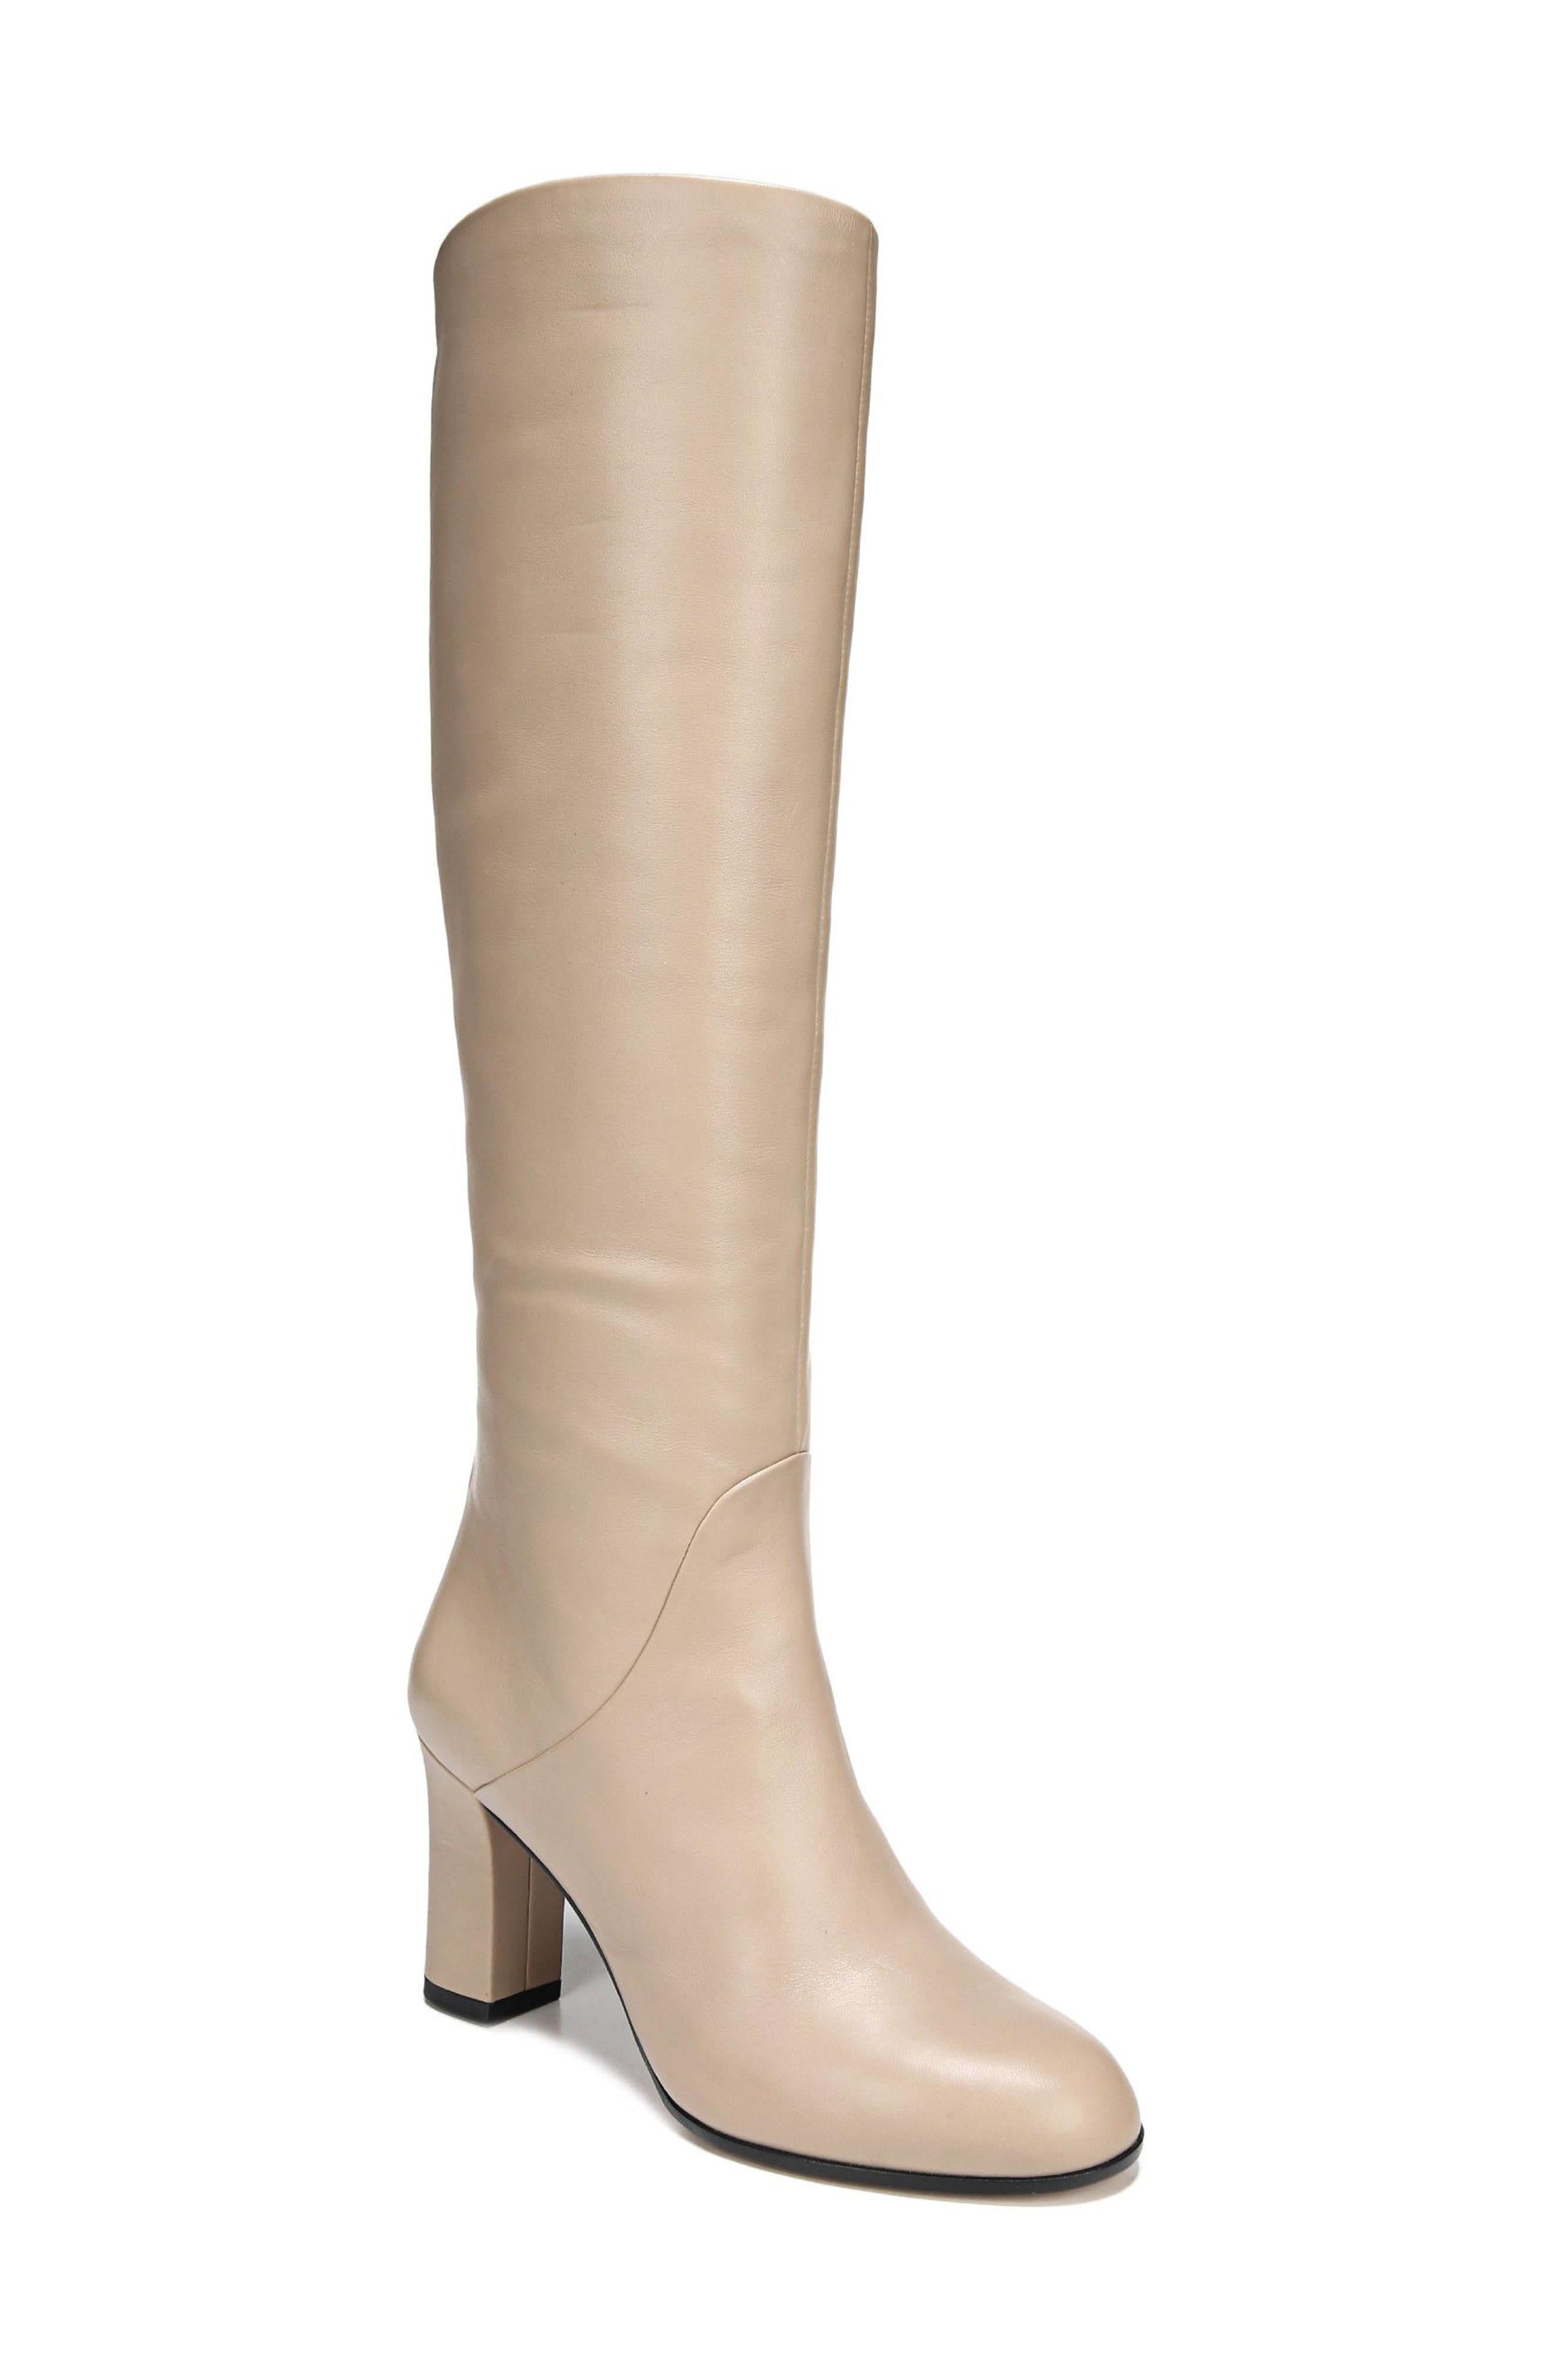 Alternate Image 1 Selected - Via Spiga Soho Knee High Boot (Women)